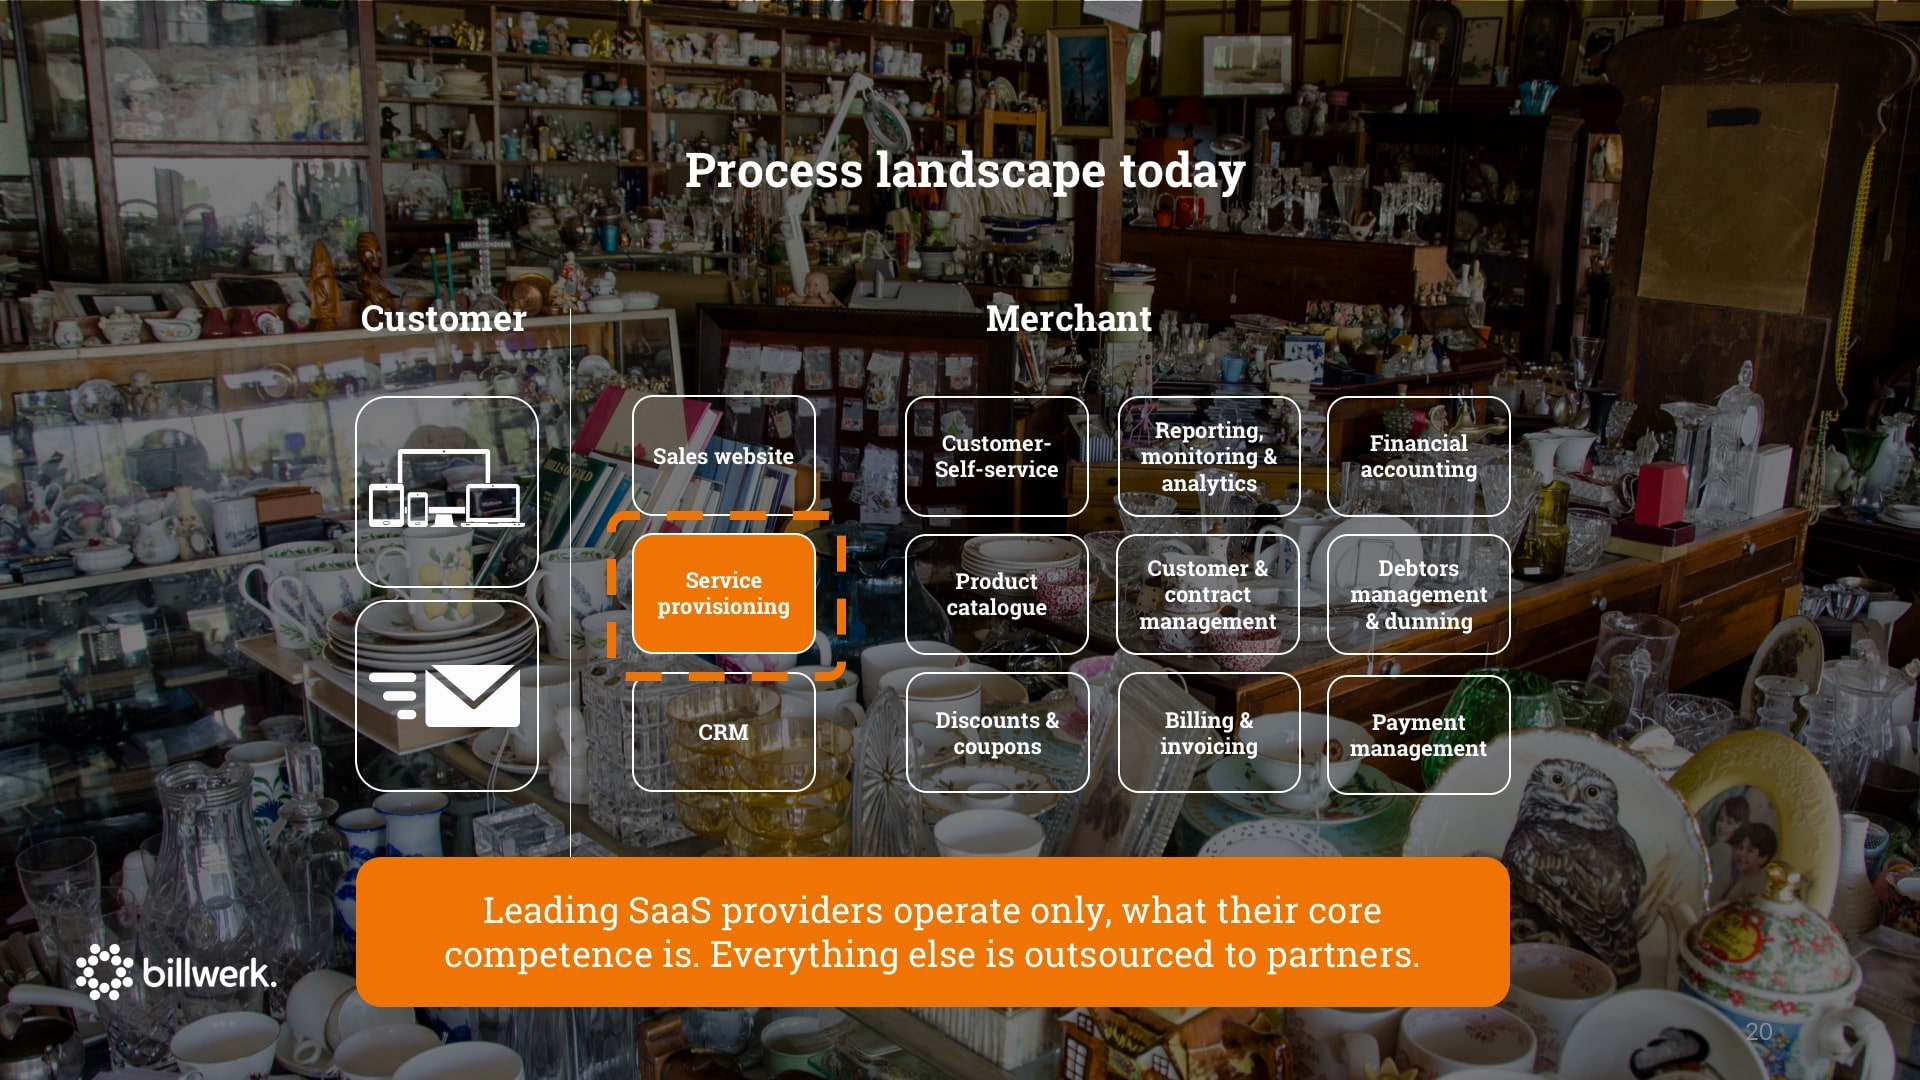 Keynote Saastock | CEO Dr. Ricco Deutscher | Process Landscape Today